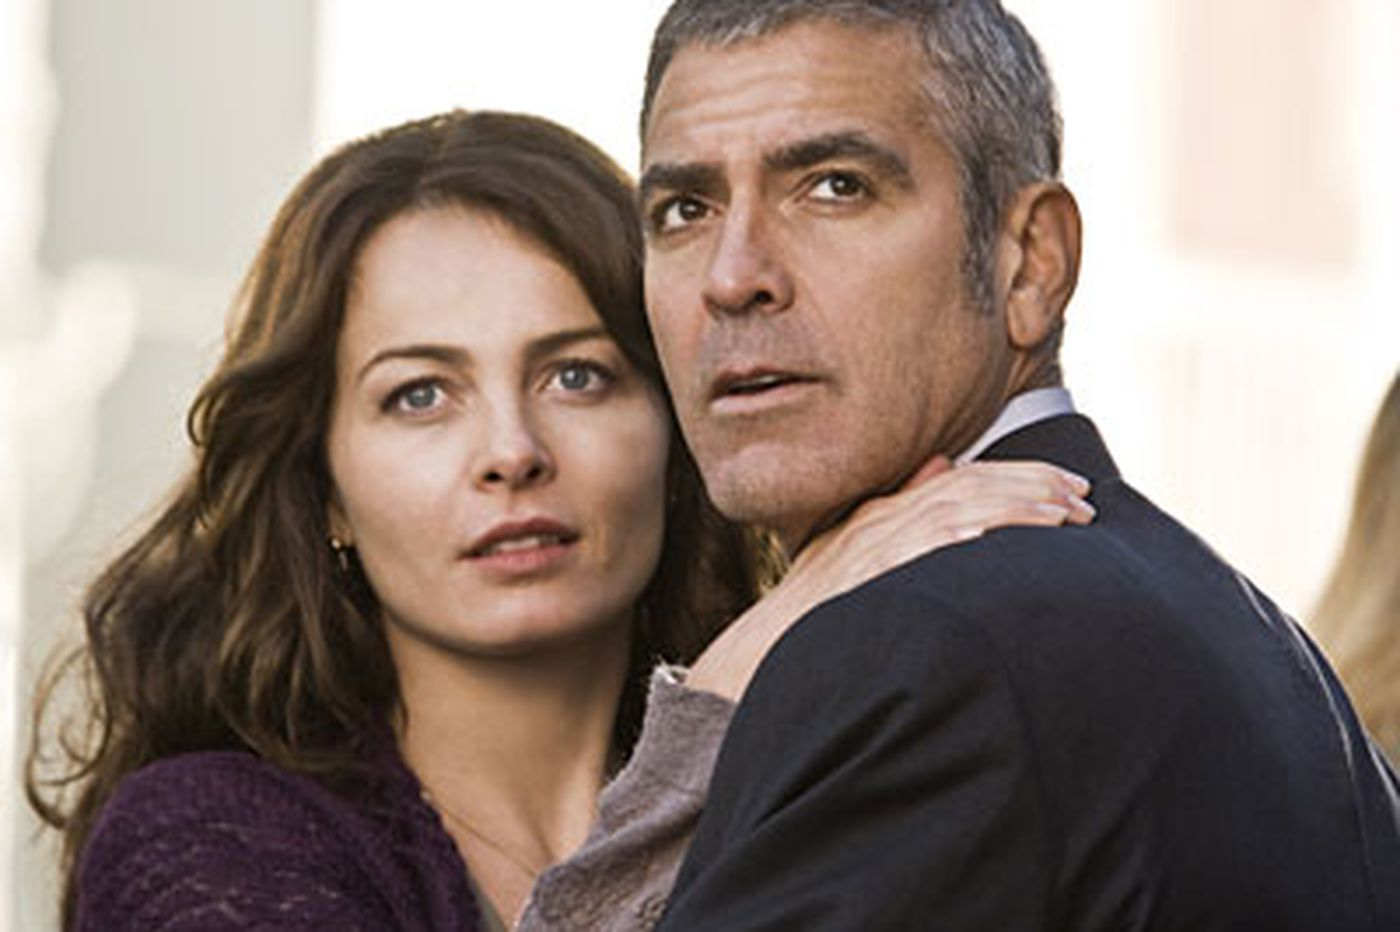 Clooney arms assassins in 'The American'